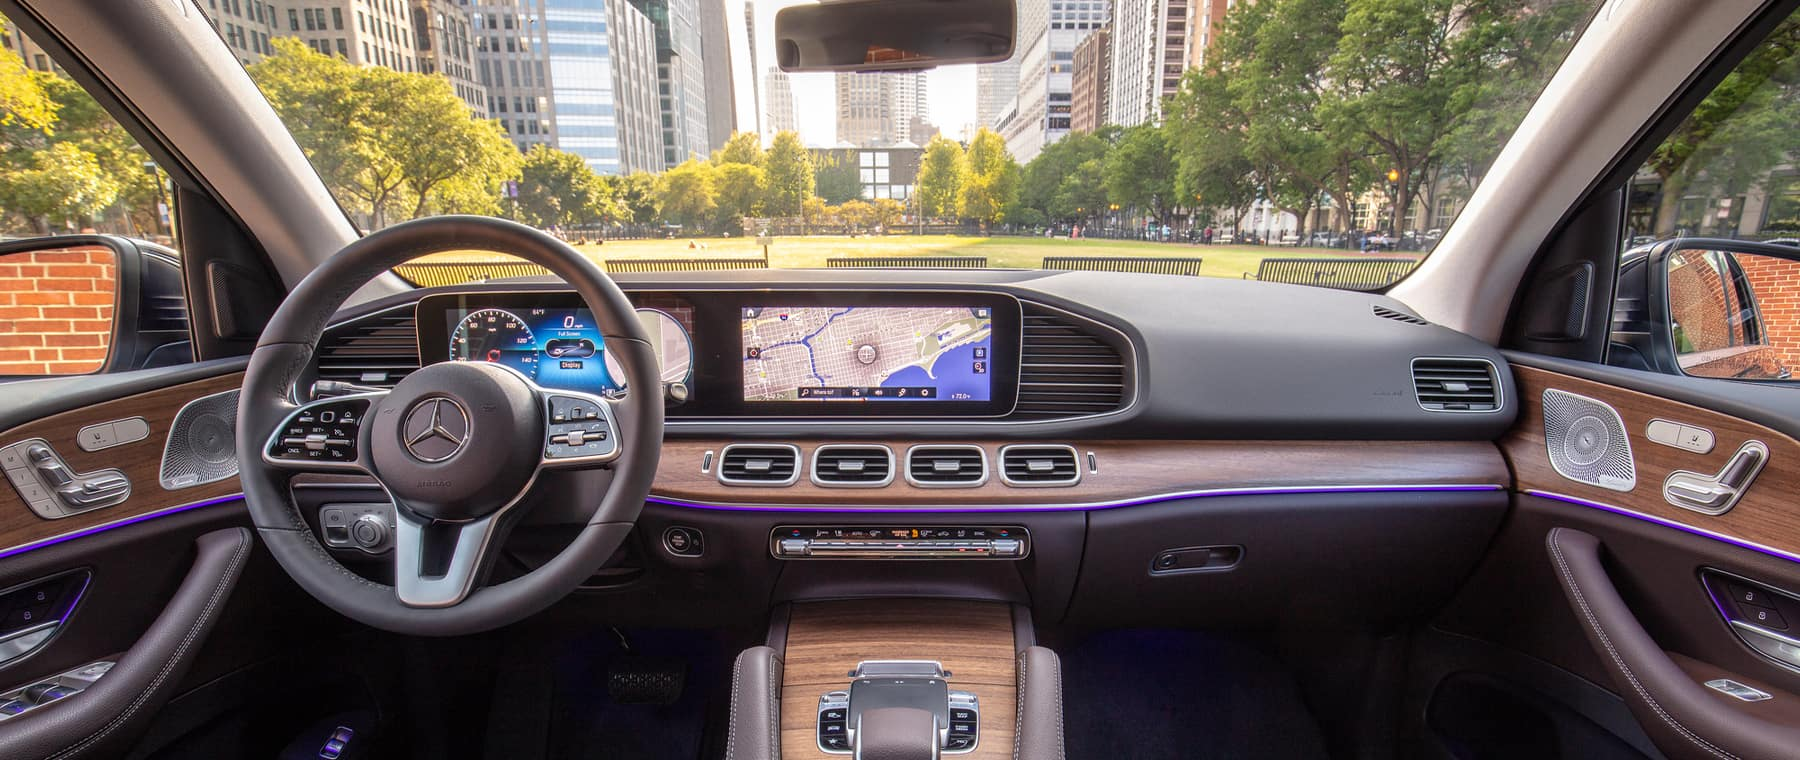 New & Used Mercedes-Benz vehicles in Nashville, TN